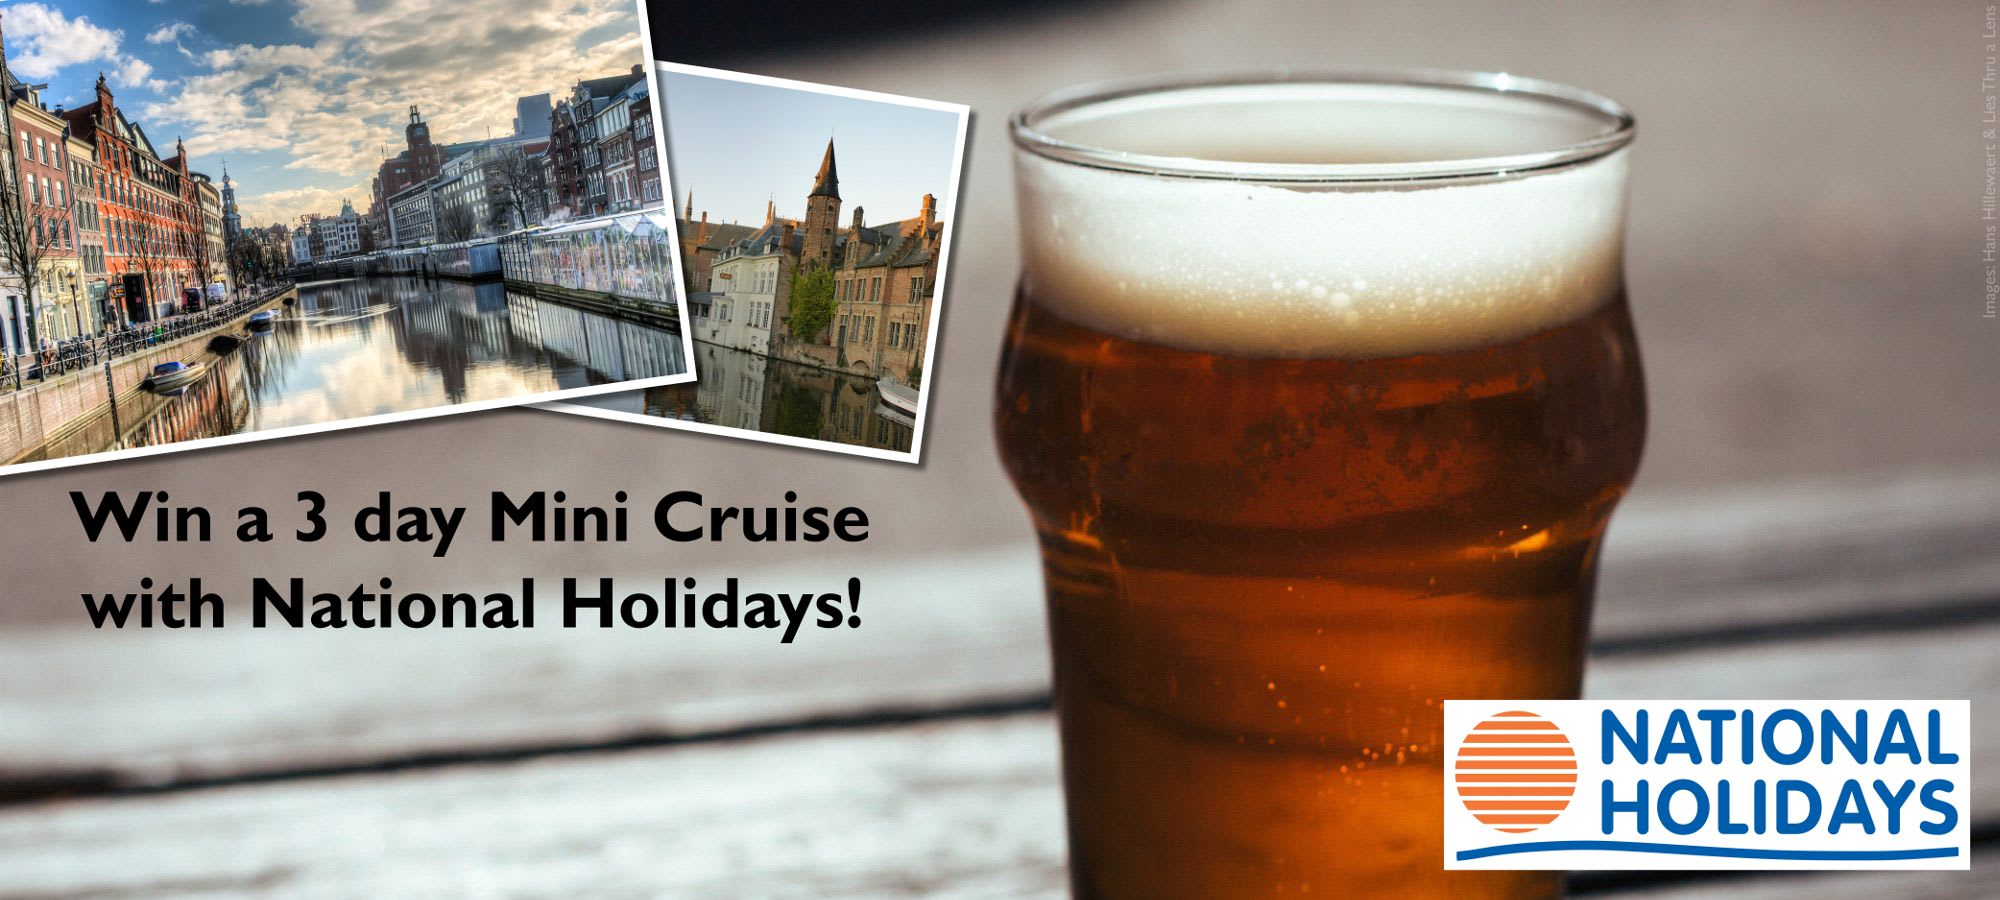 Win a Cruise at the Beer Festival